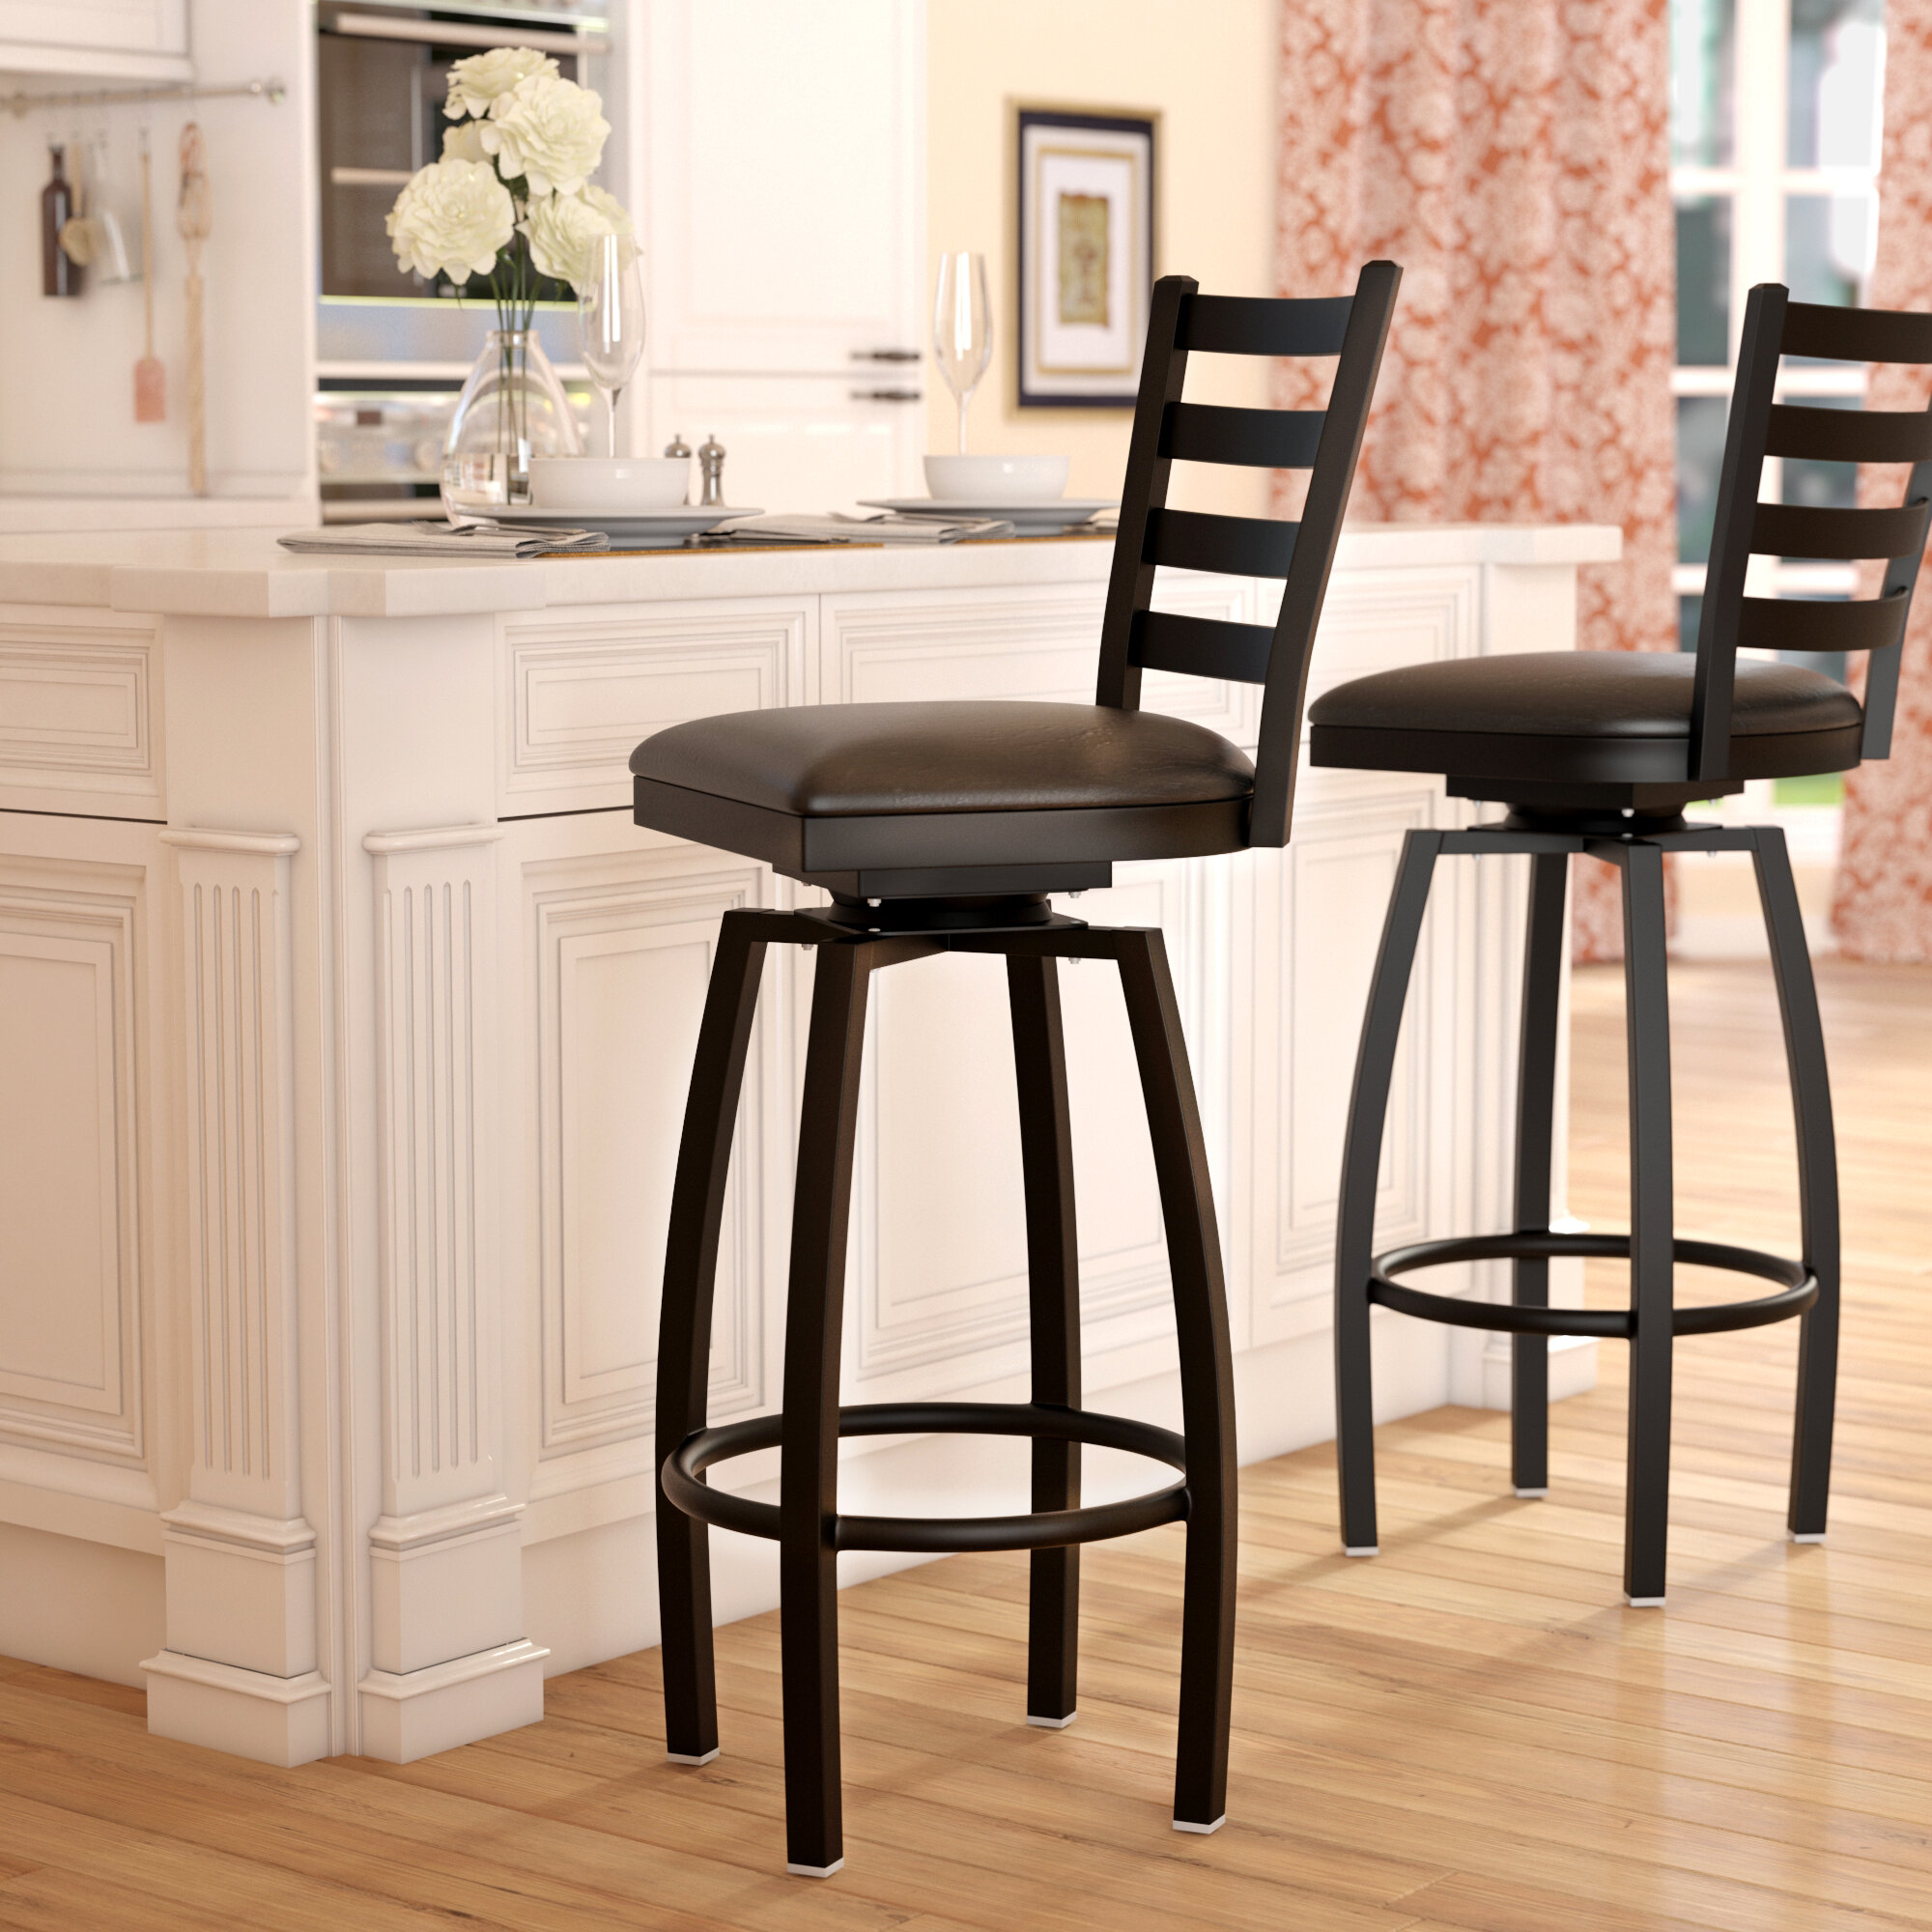 for stool stools silver design metal cheap with bar seat breathtaking target walmart used sale amusing yellow back